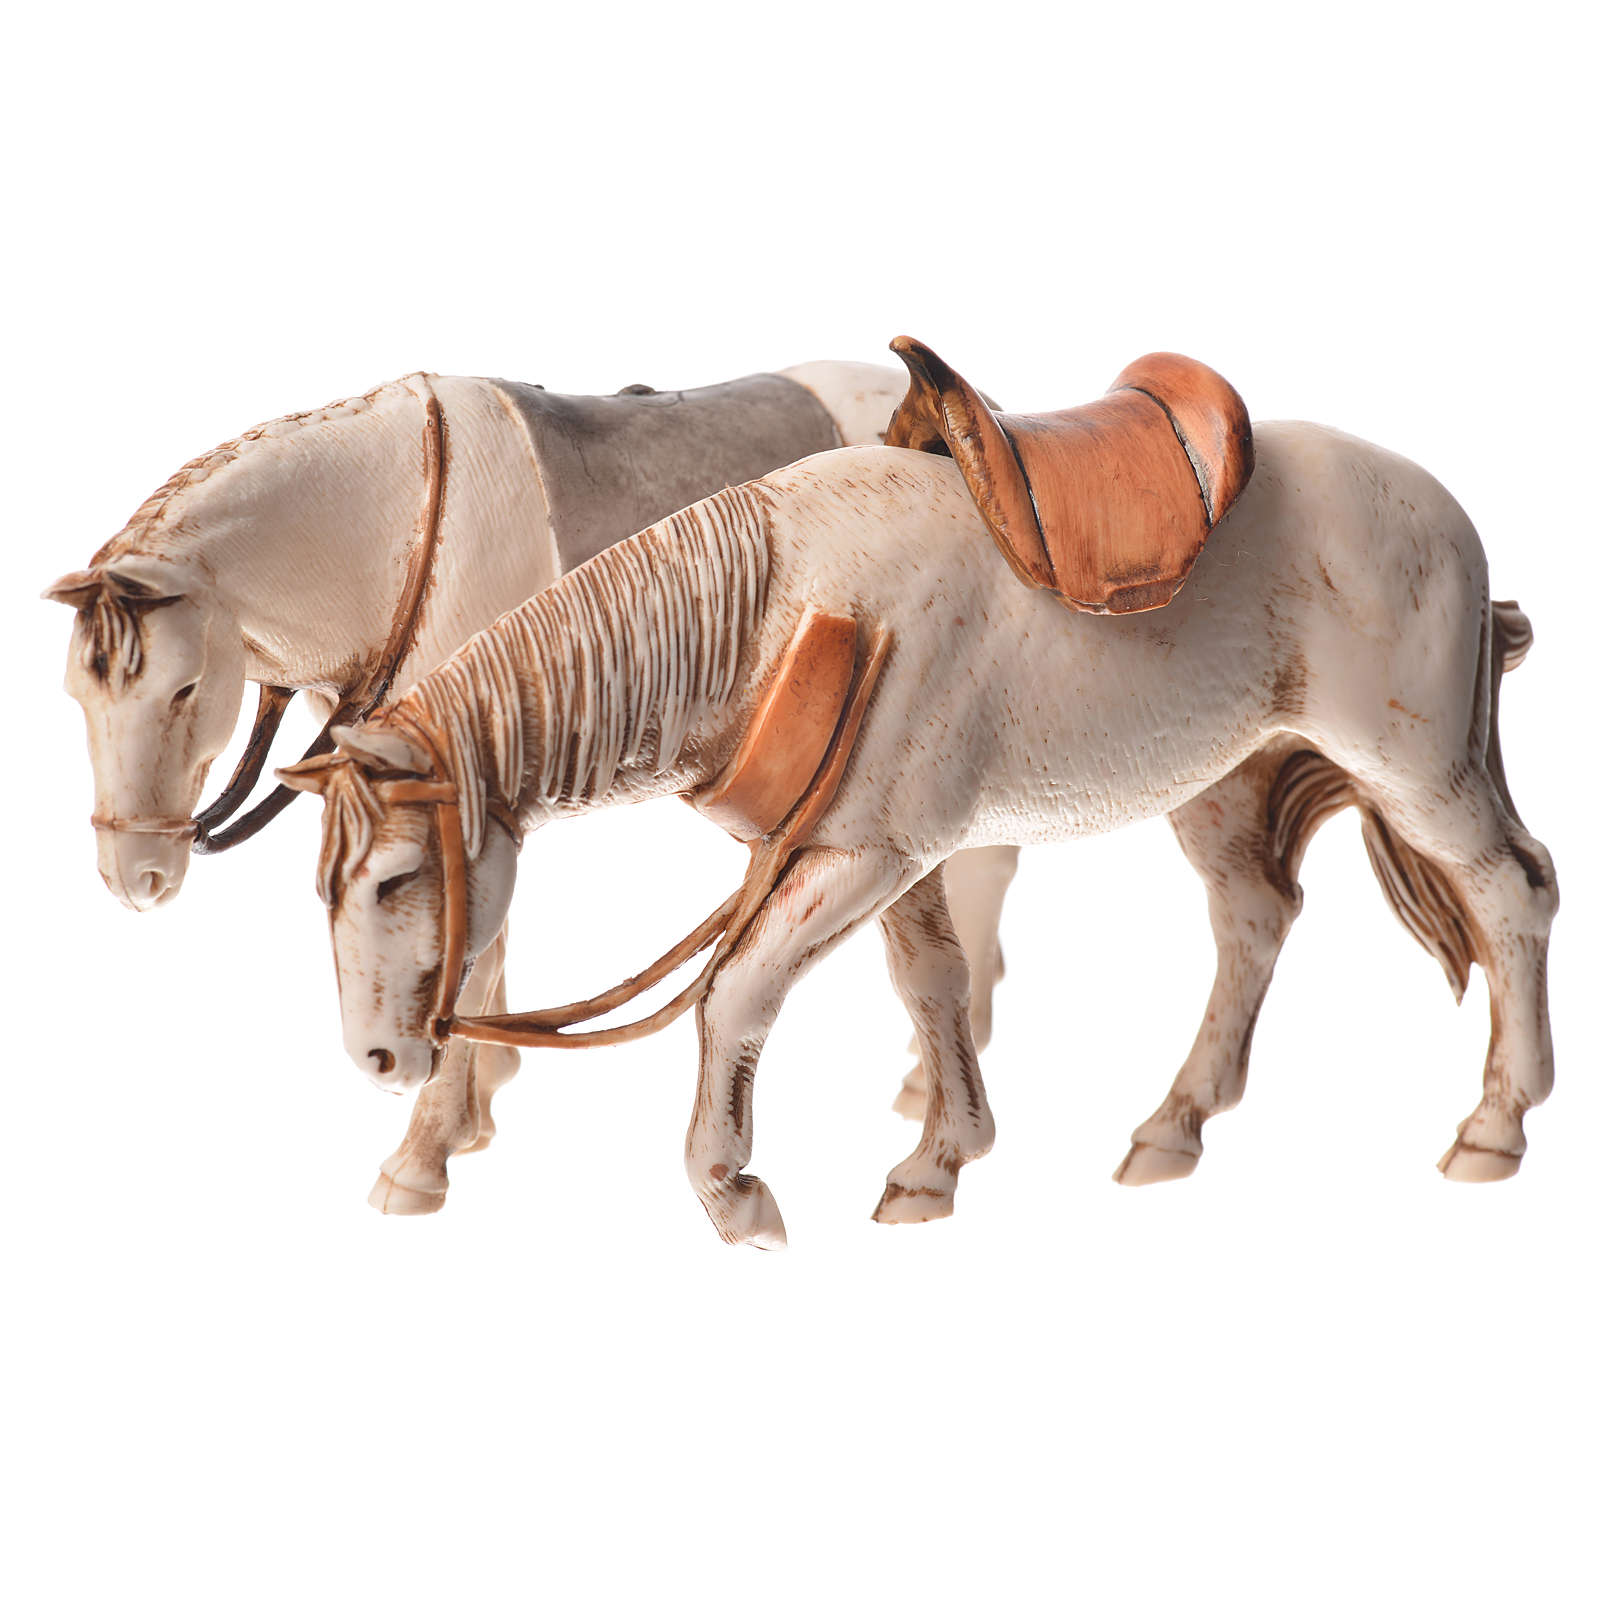 Nativity Scene horses by Moranduzzo 10cm, 2 pieces 4